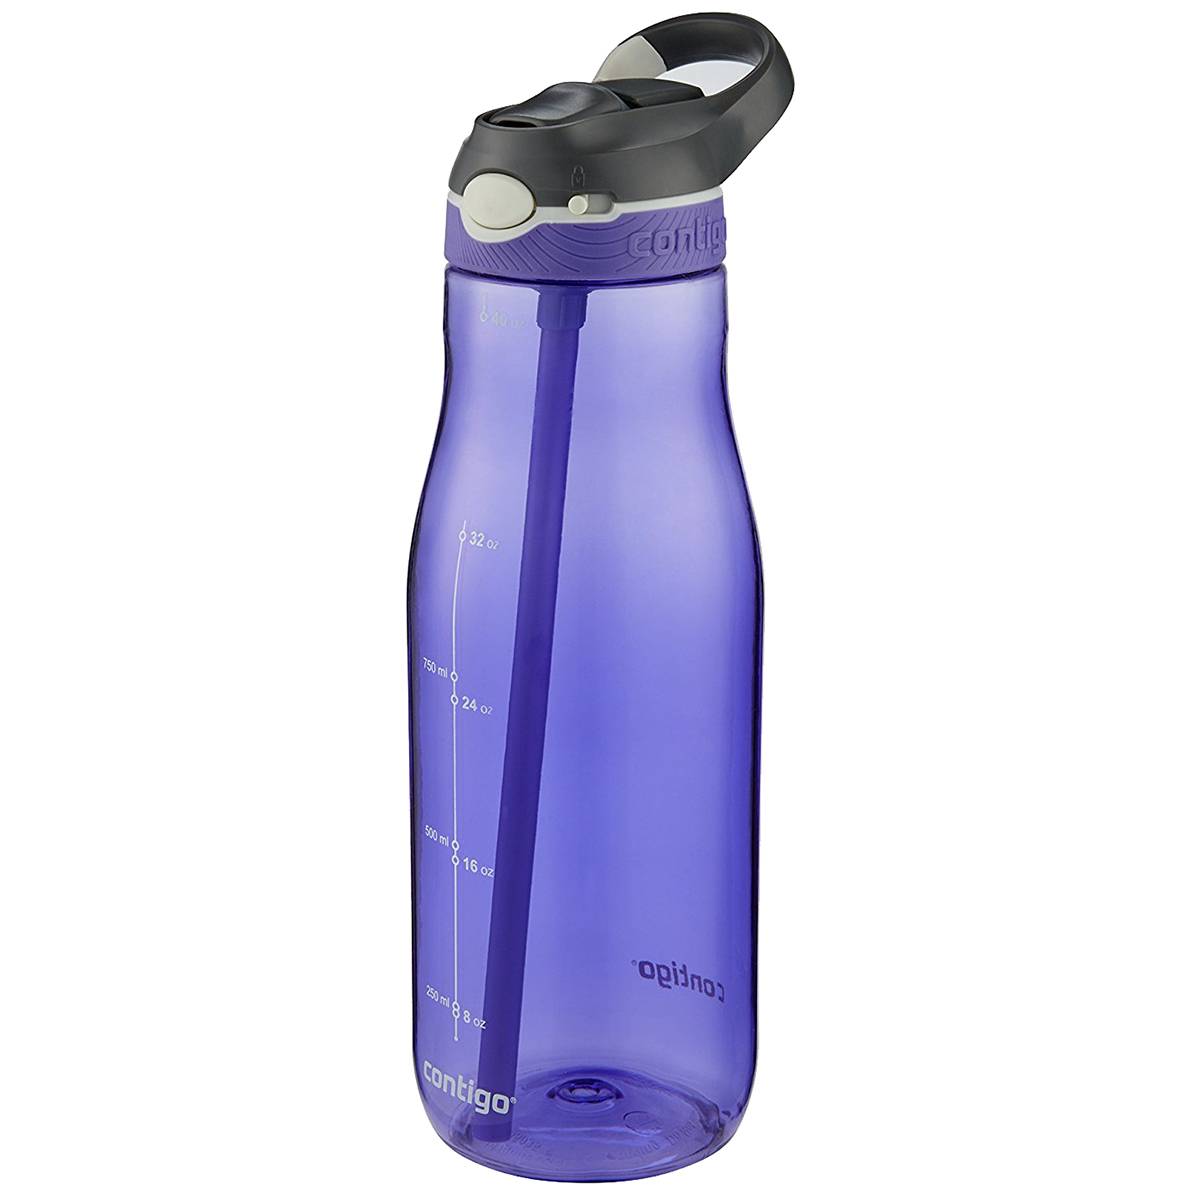 Contigo-40-oz-Ashland-Autospout-Water-Bottle thumbnail 7